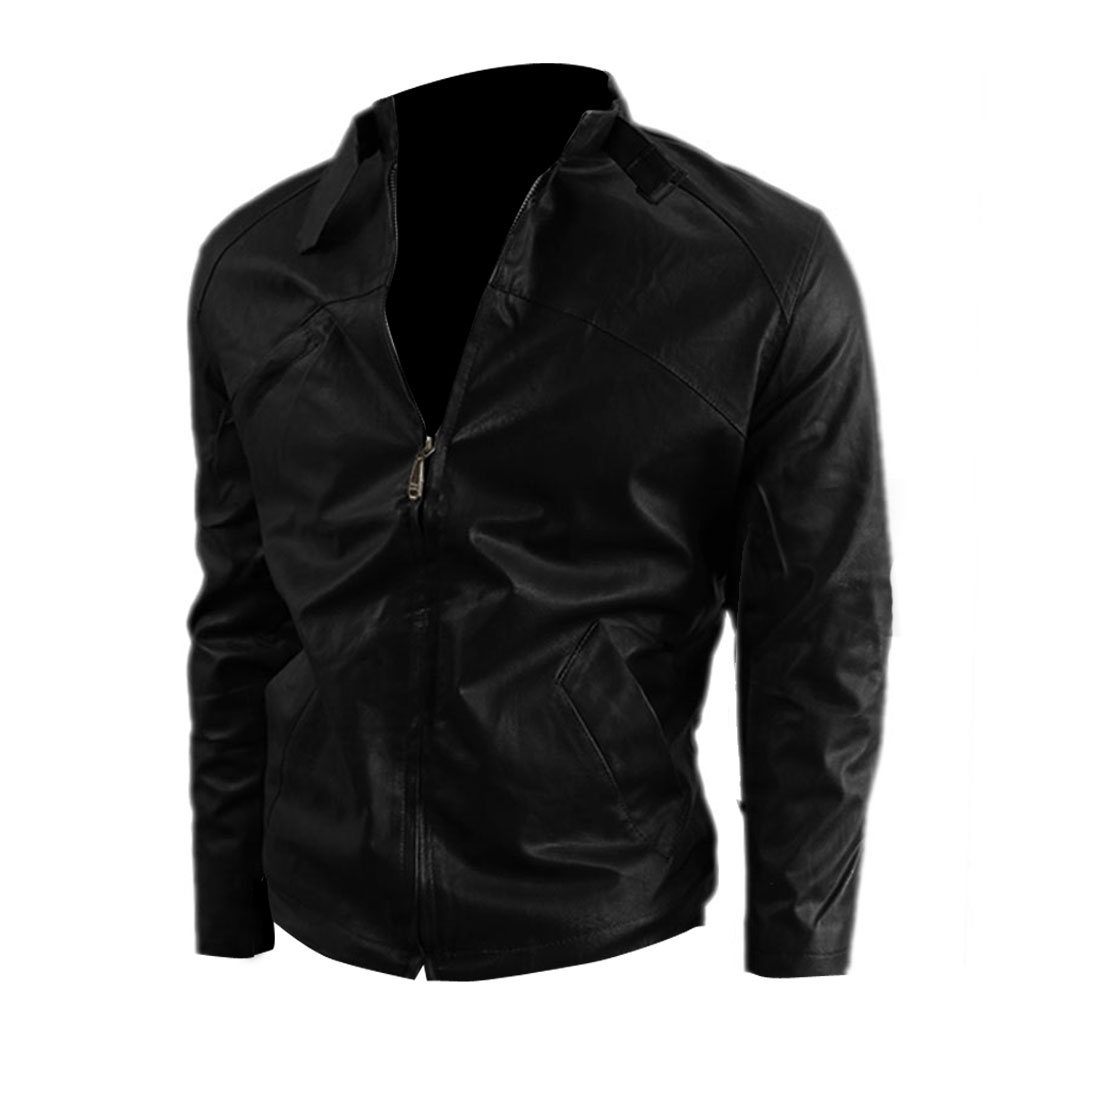 Men's Stand Collar Zip Up w Pockets Stylish Black Leather Jacket M